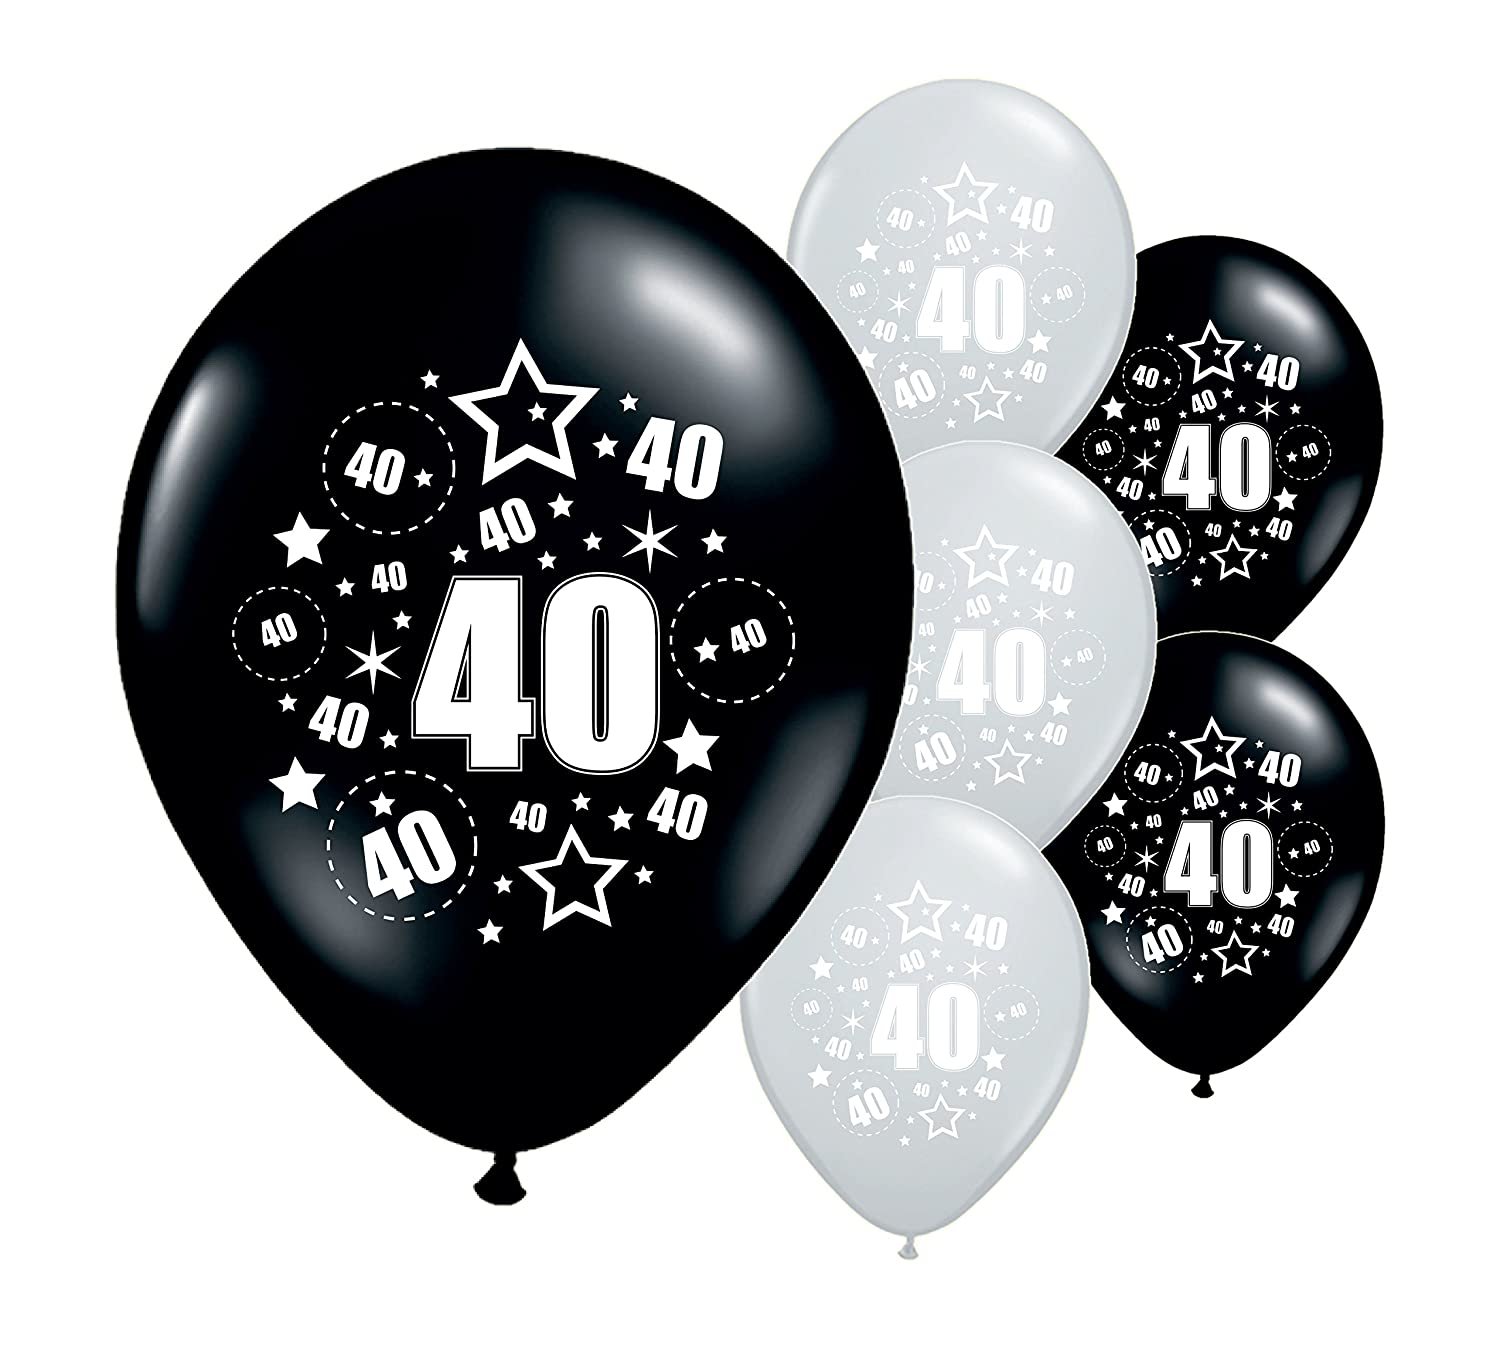 Partyangels 10 X AGE 40th BIRTHDAY BALLOONS BLACK SILVER PINK BLUE 12 HELIUM AIRFILL PA Amazoncouk Toys Games